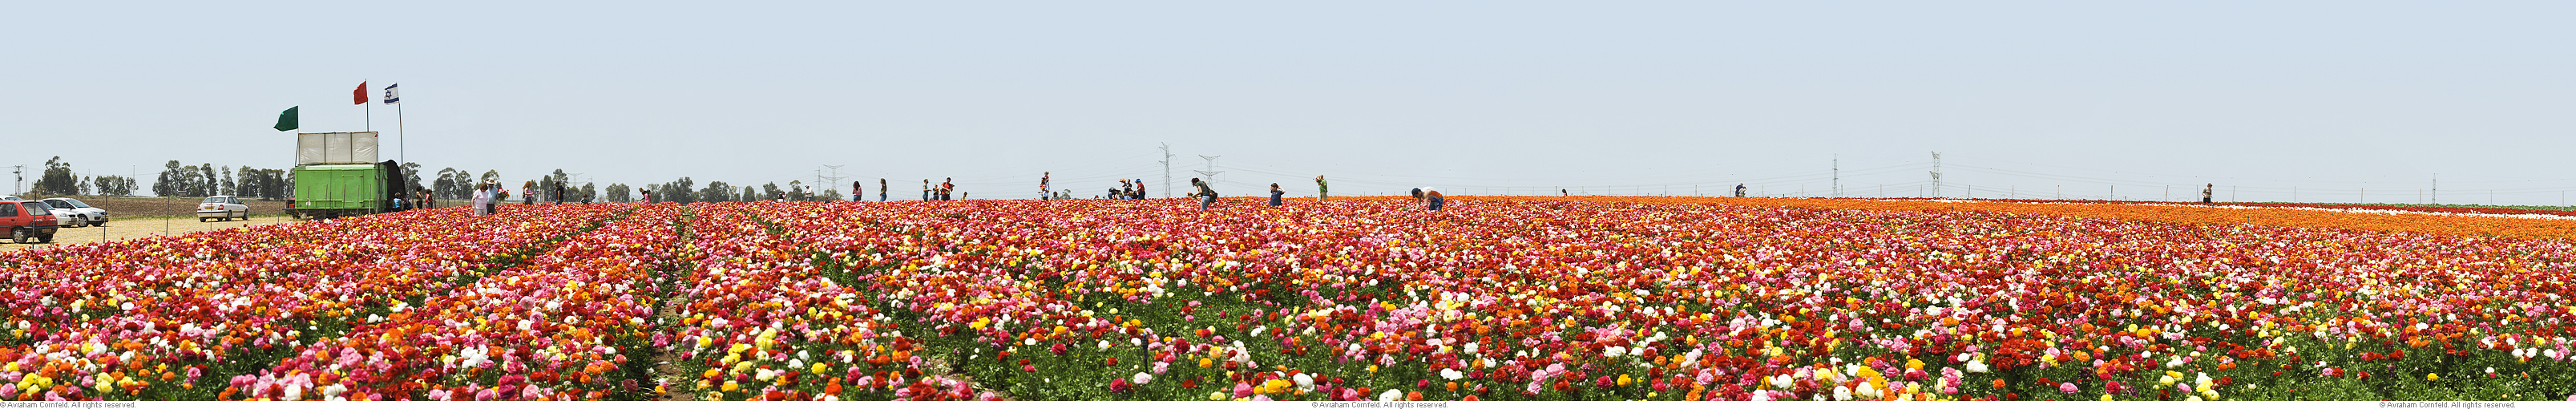 pan_flower_field